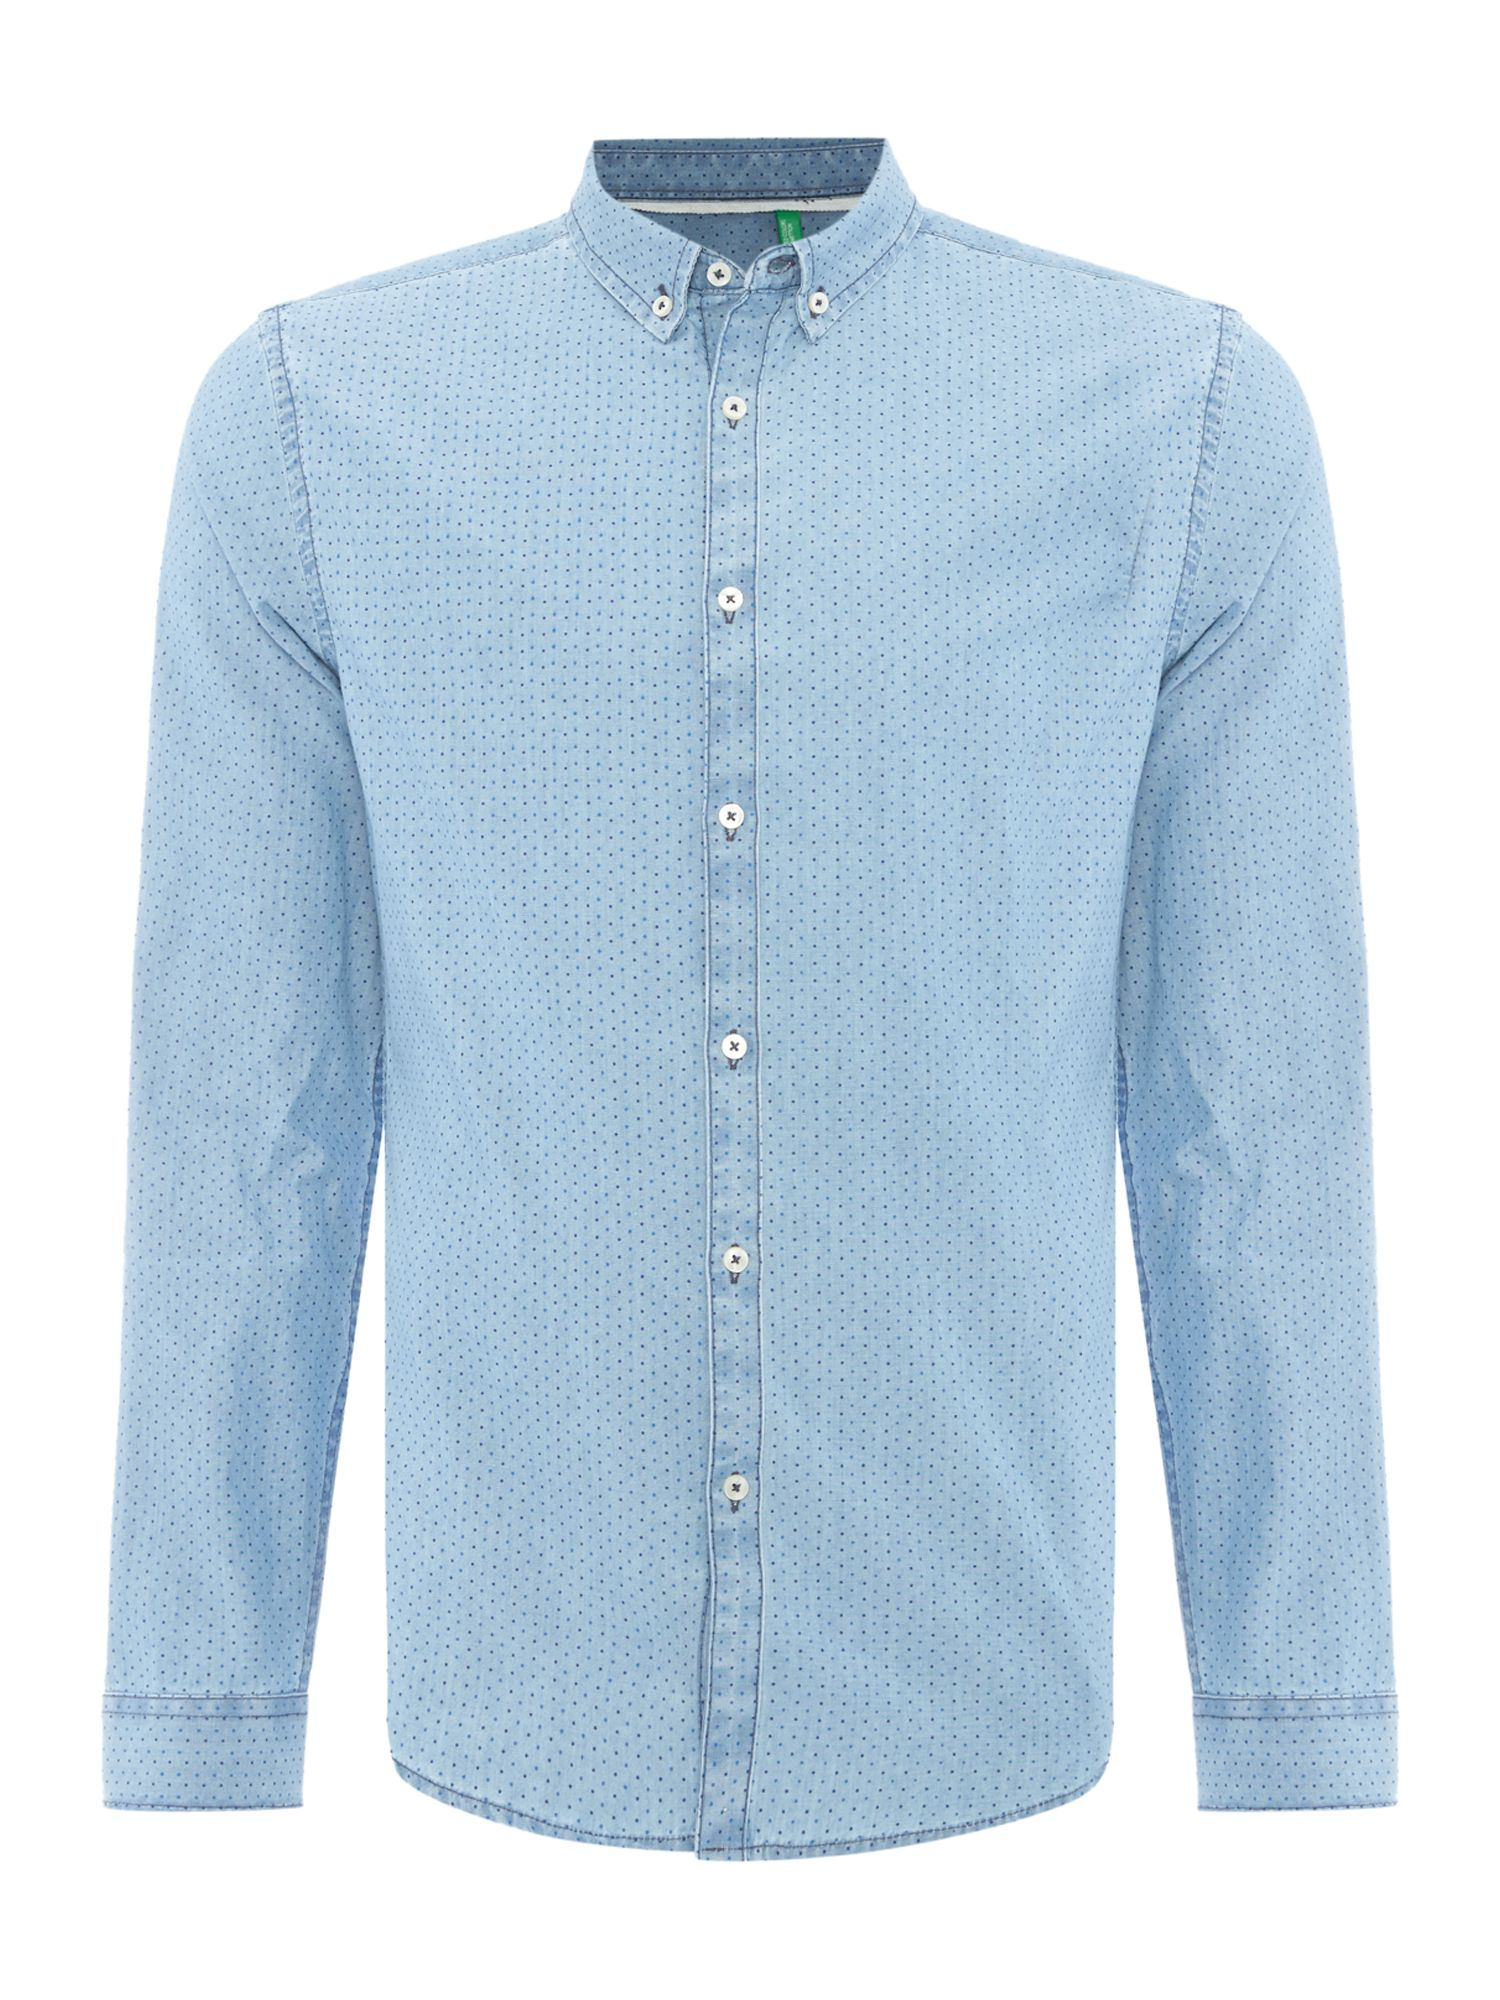 Mens Chambray Shirt Freshen up the wardrobe now with a men's chambray shirt. Often characterized by lightweight fabrics and a button-down style, these breezy shirts are great for paying tribute to the warmer months of the year, even when the temperatures dip.